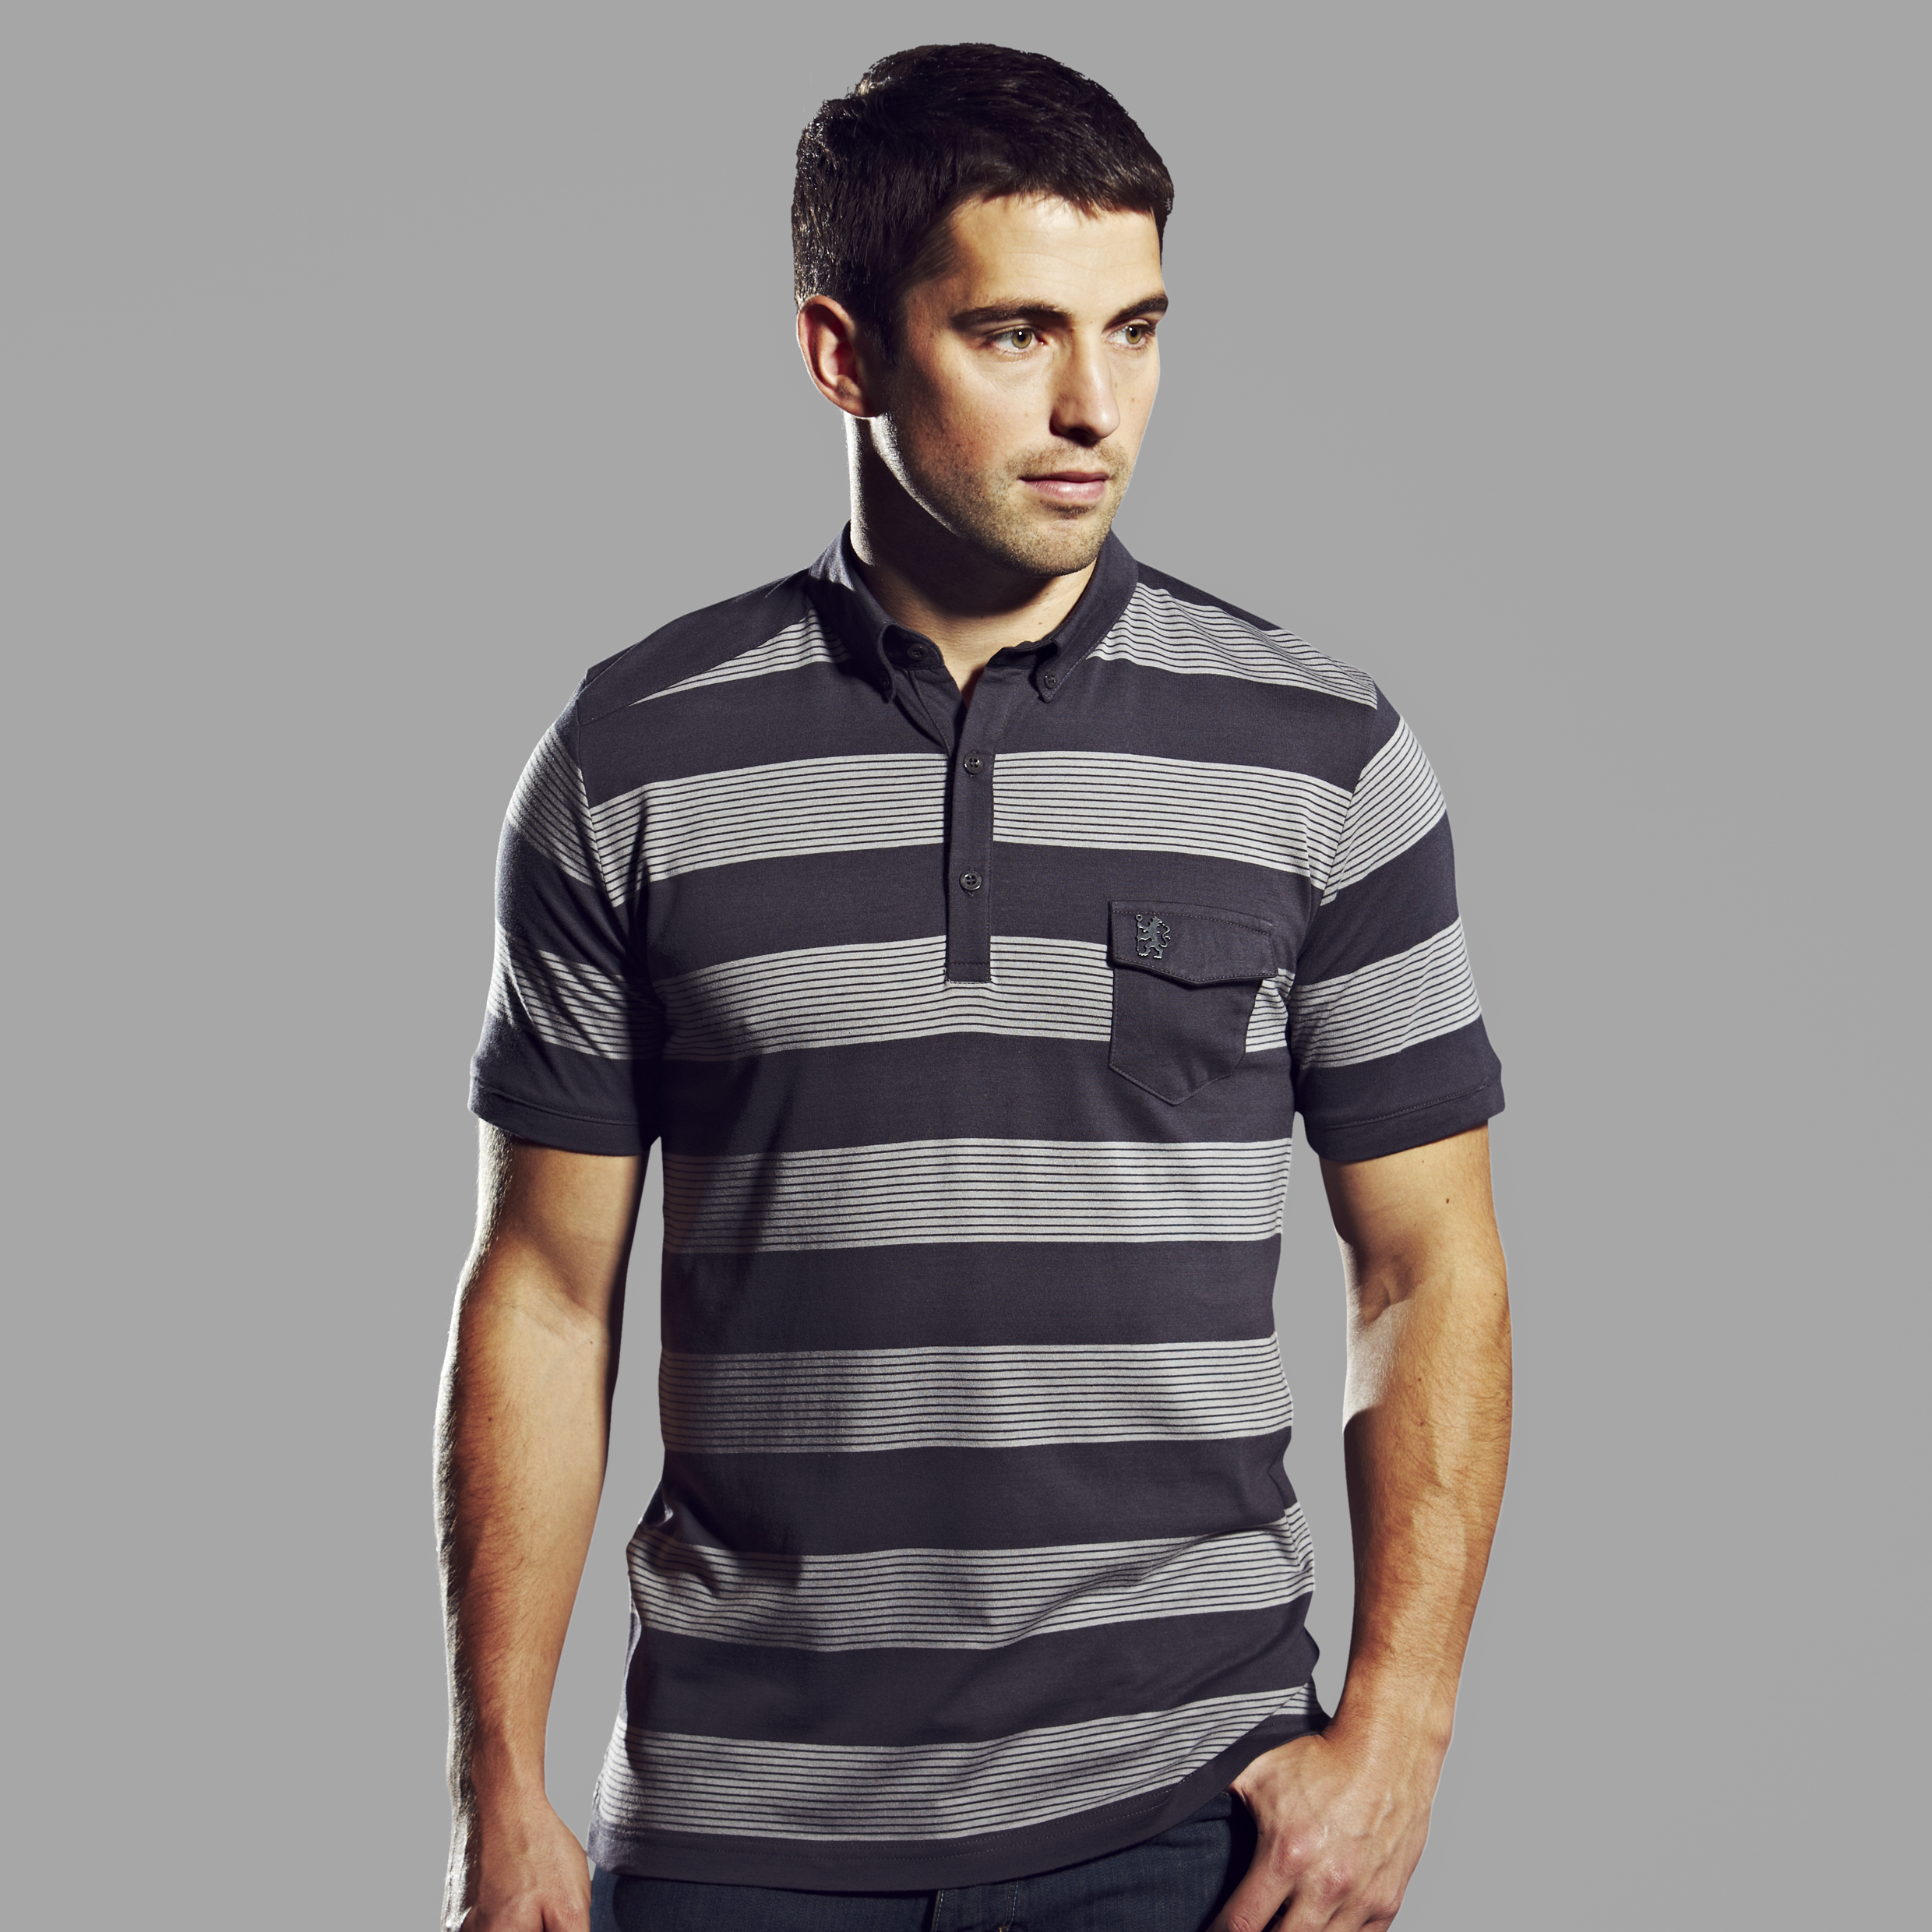 Chelsea Collection Striped Pocket Polo - Mens Grey